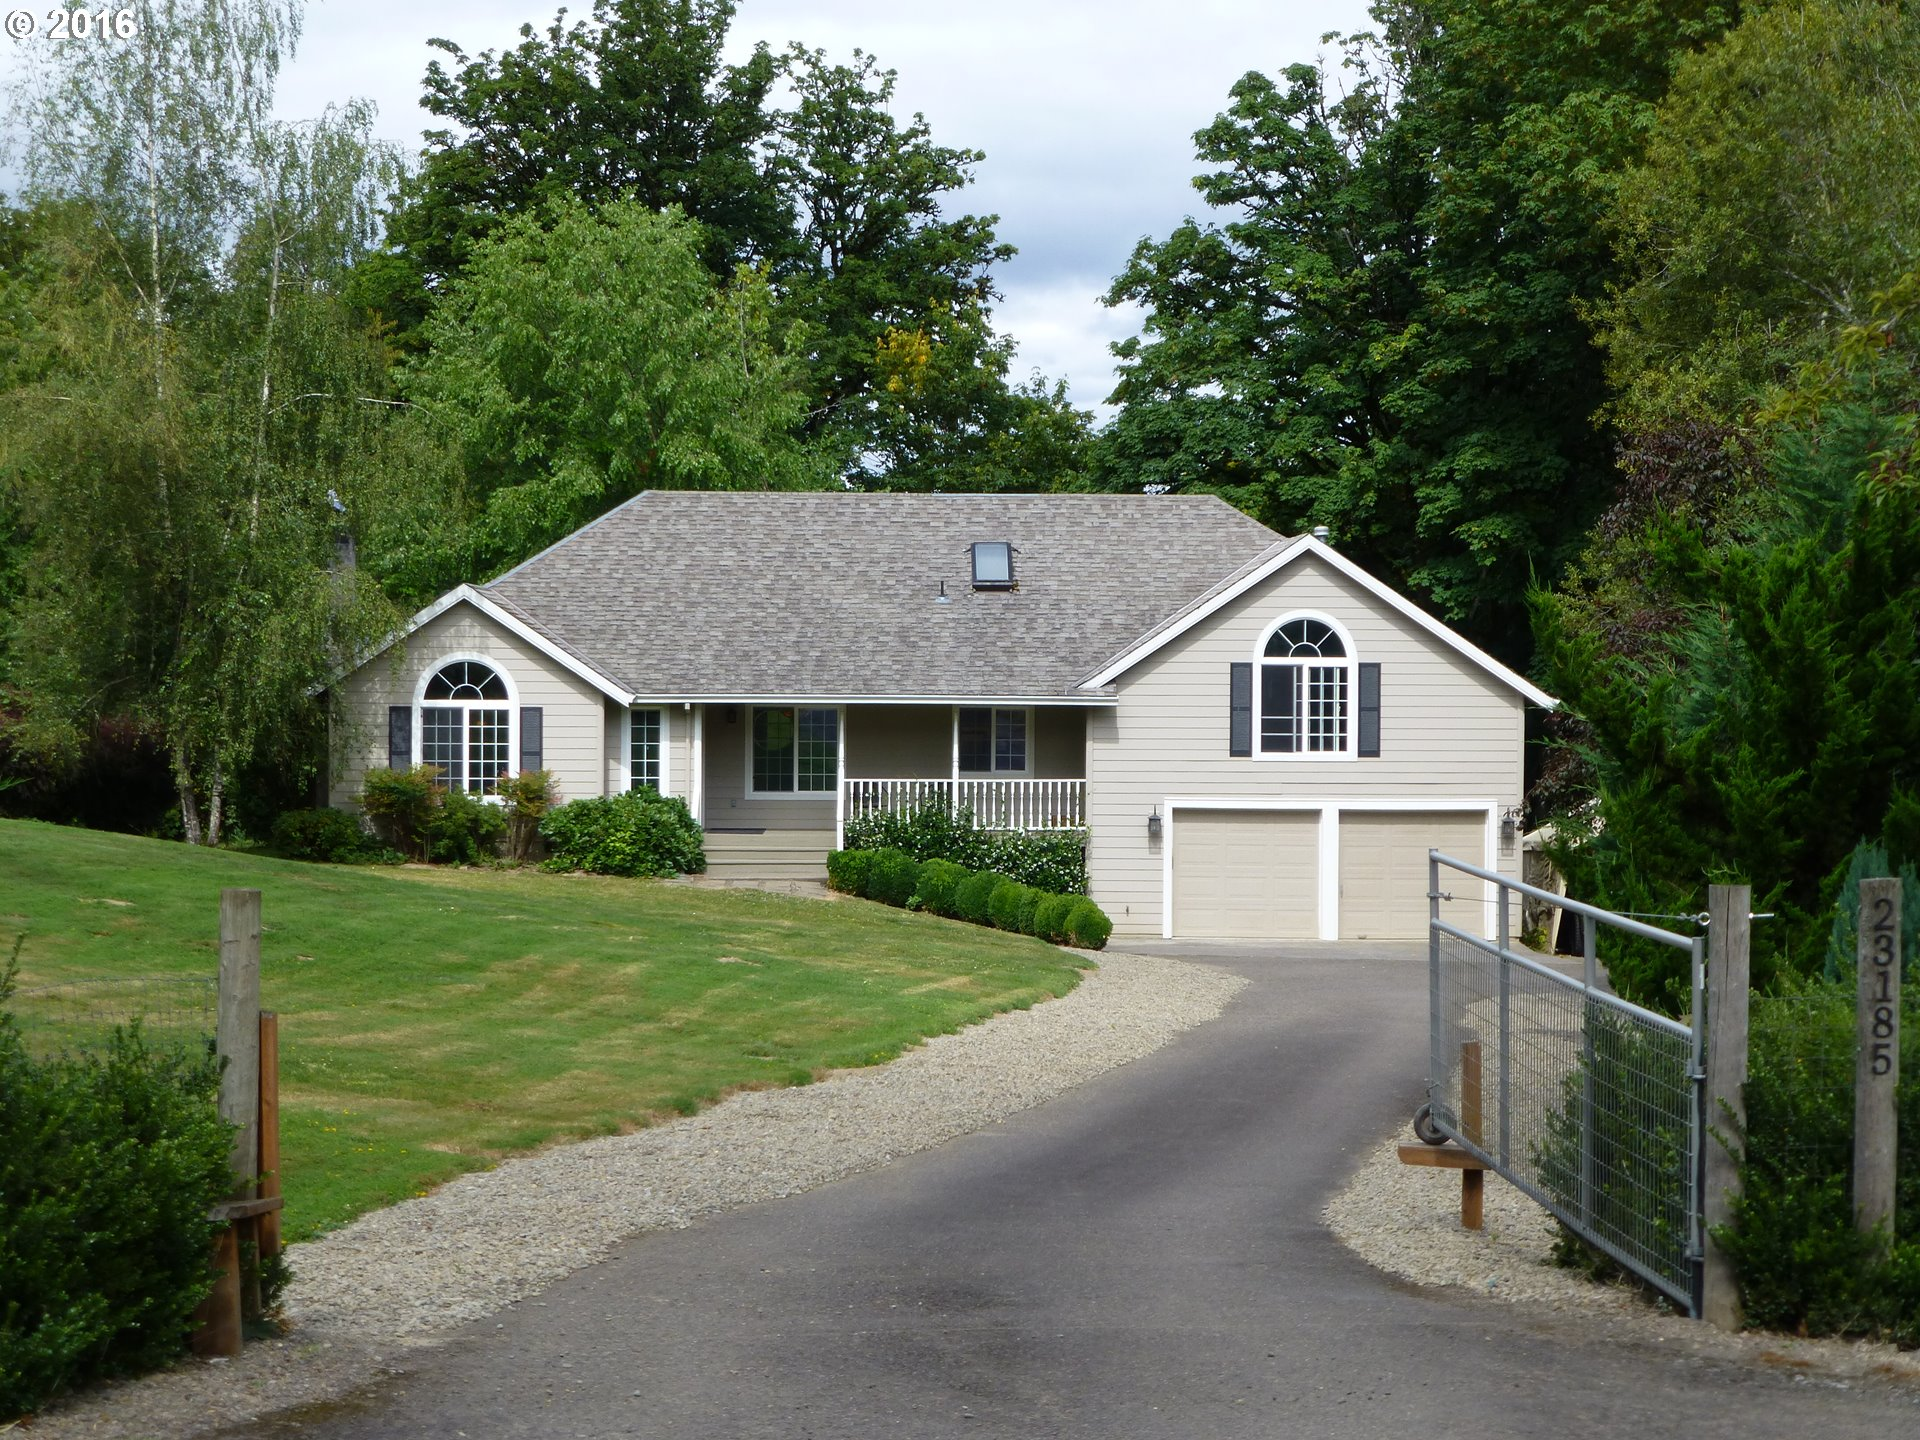 23185 S Central Point Rd Canby, OR 97013